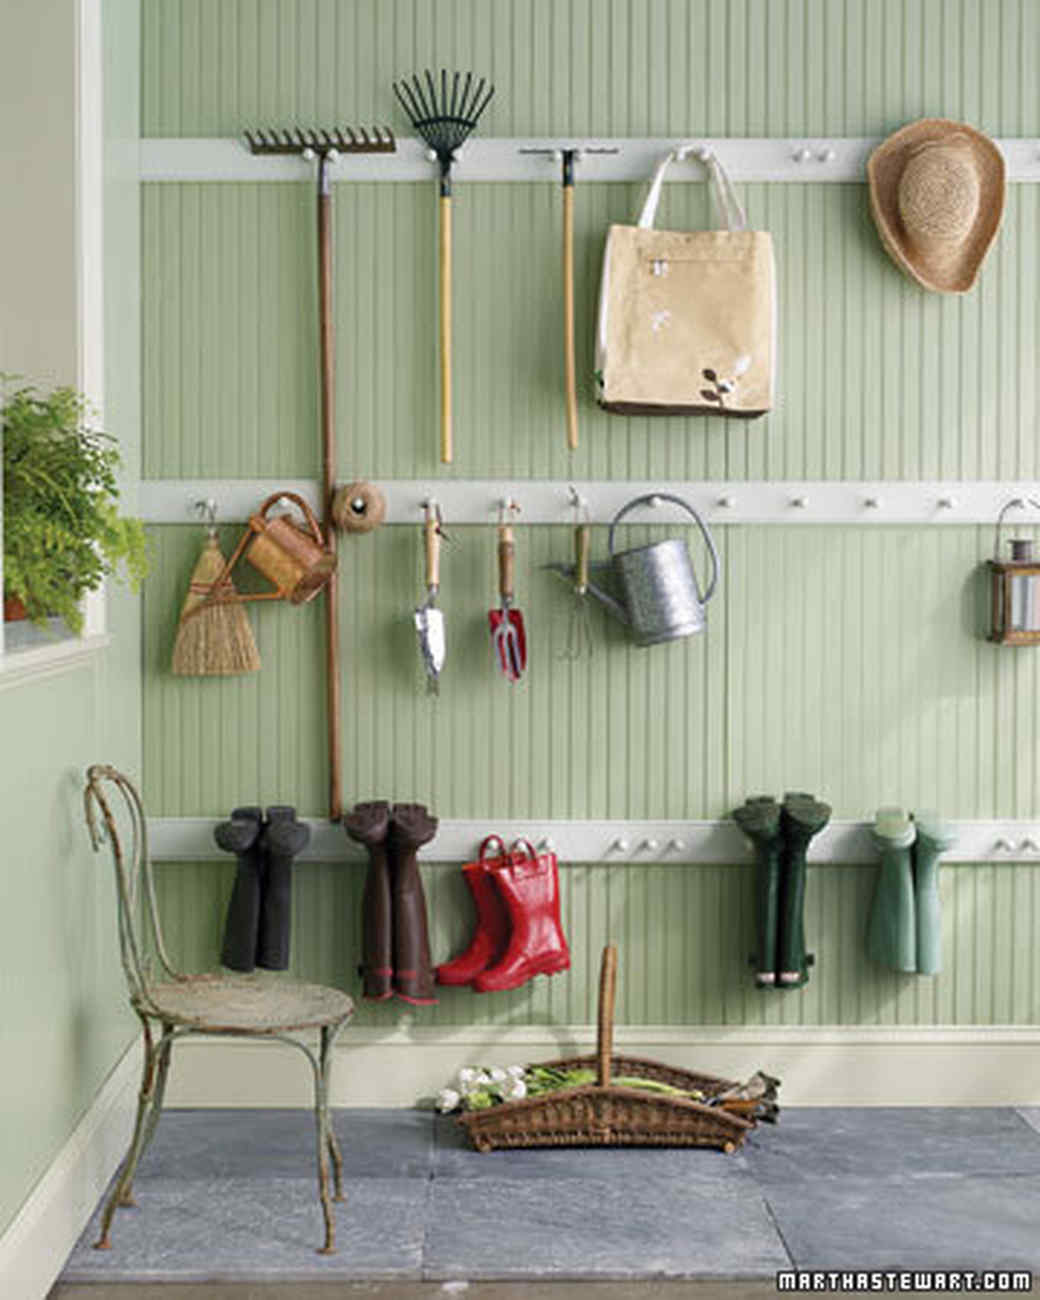 15 Ingenious Garage Organization: Peg Rail Organizer | Homesteading Today Ideas To Get You Started